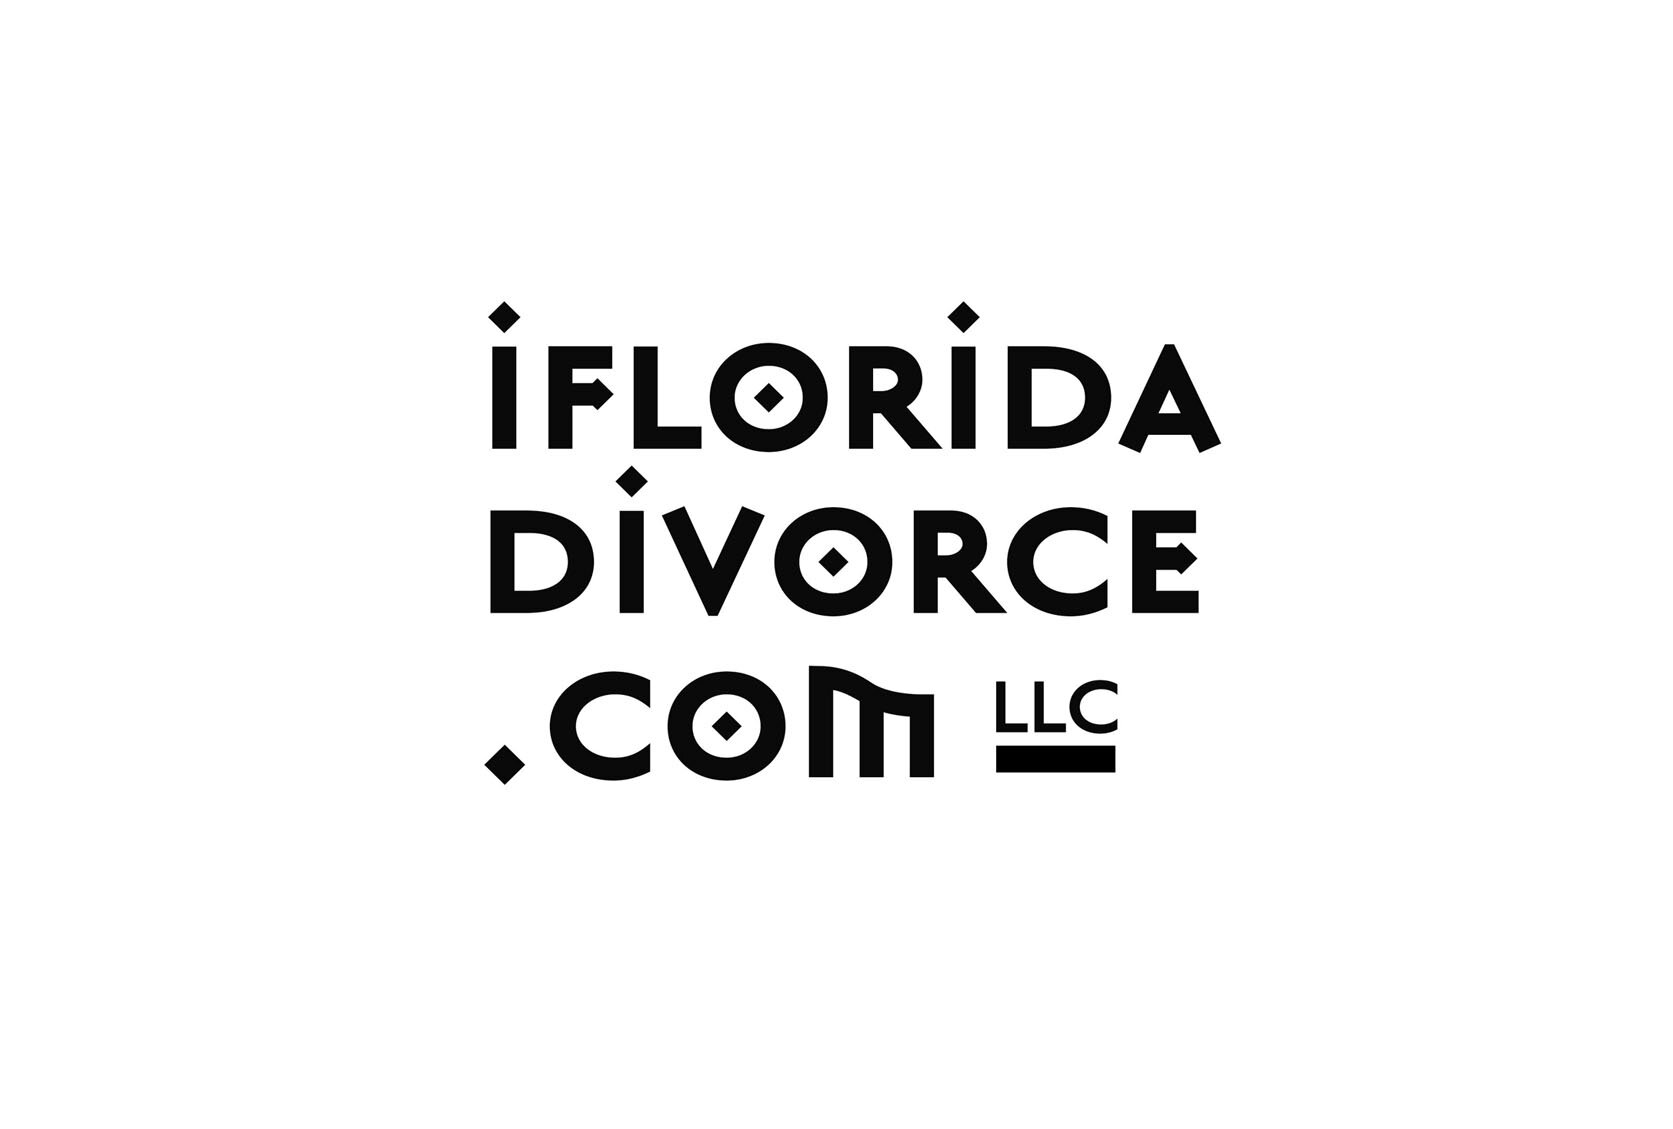 Certification — ifloridadivorce.com